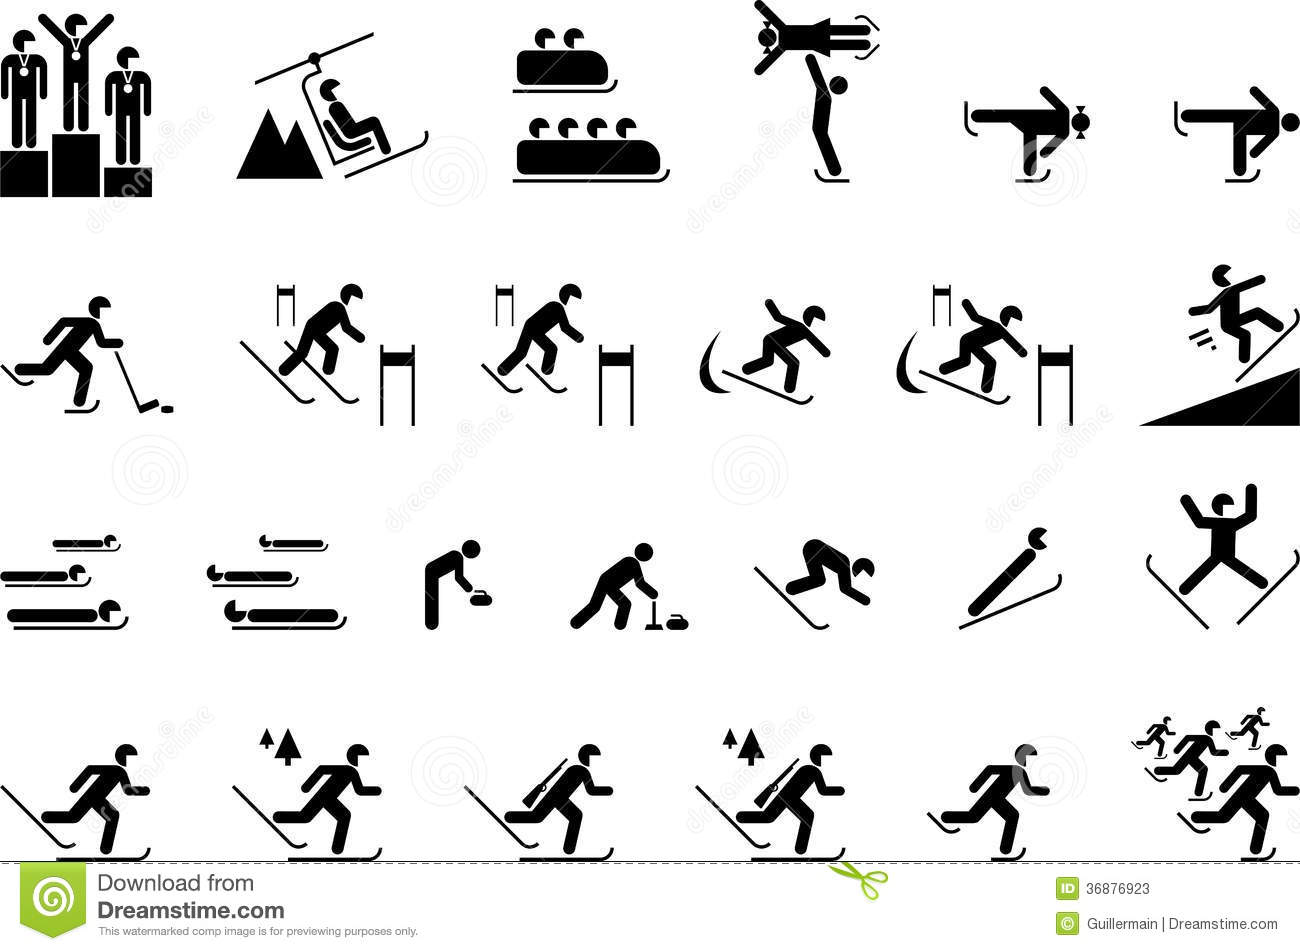 hight resolution of winter olympic sports